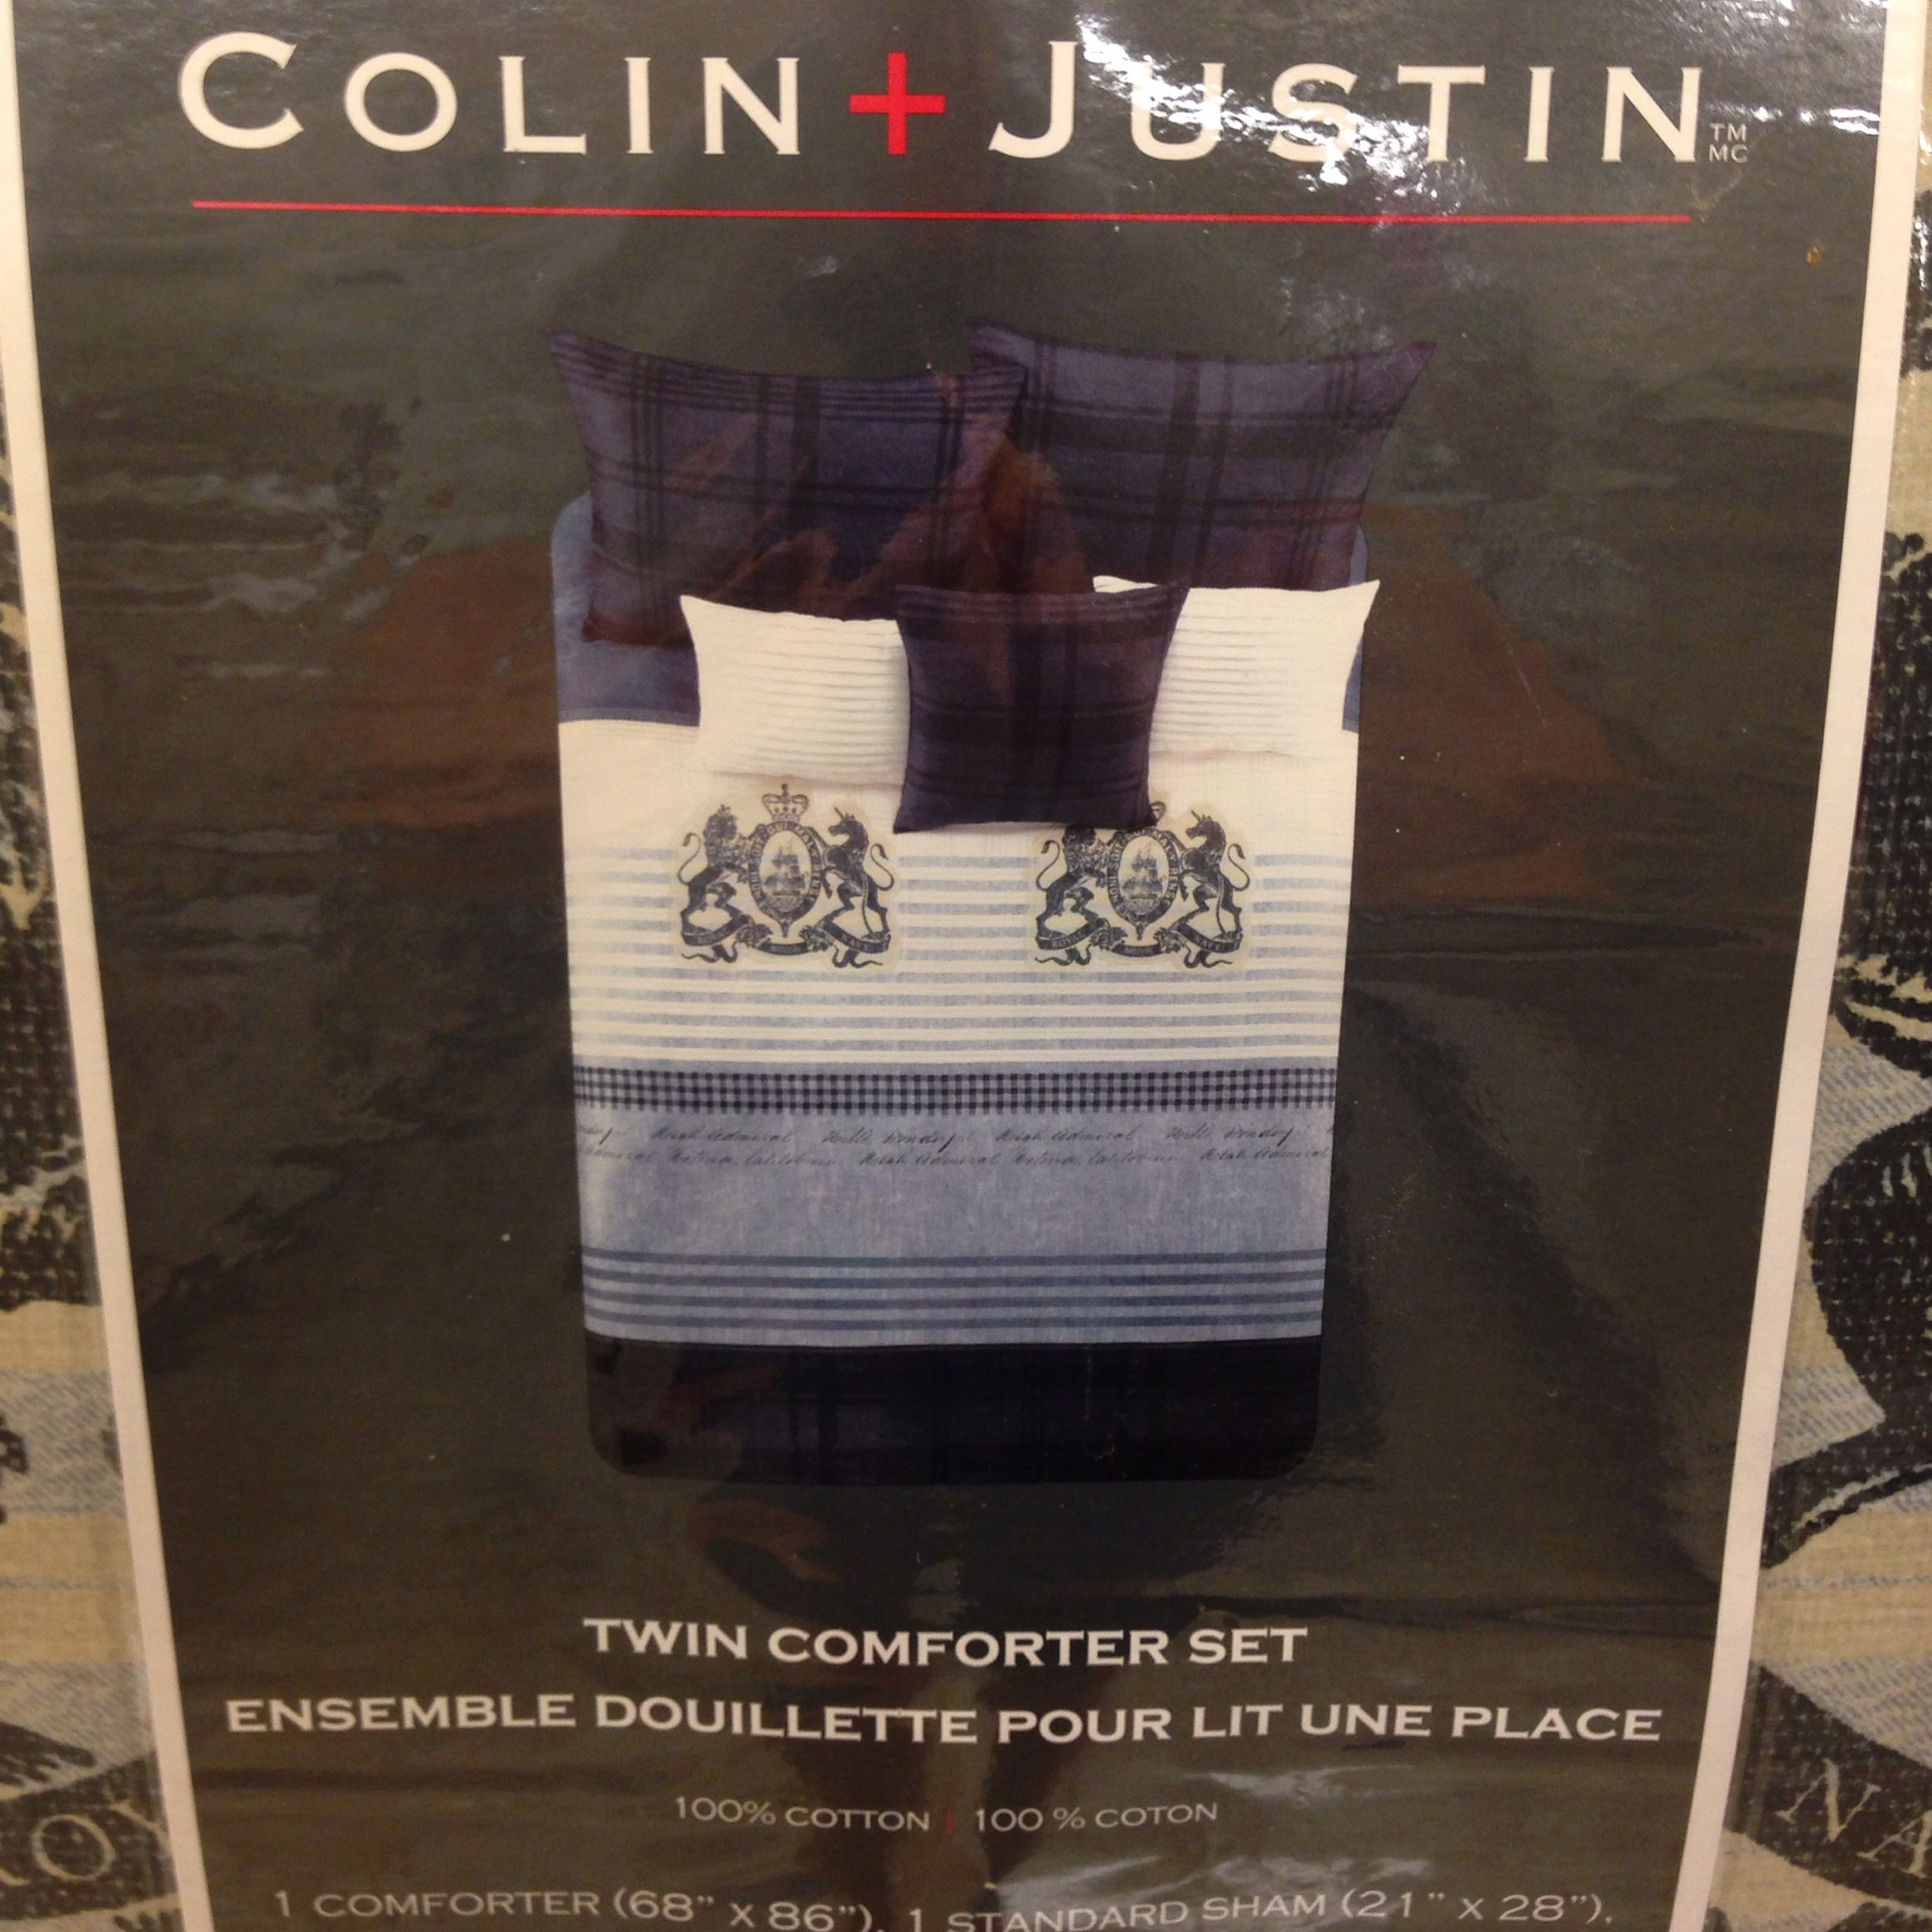 'Colin and Justin Home' bedding. | Bed, Justin